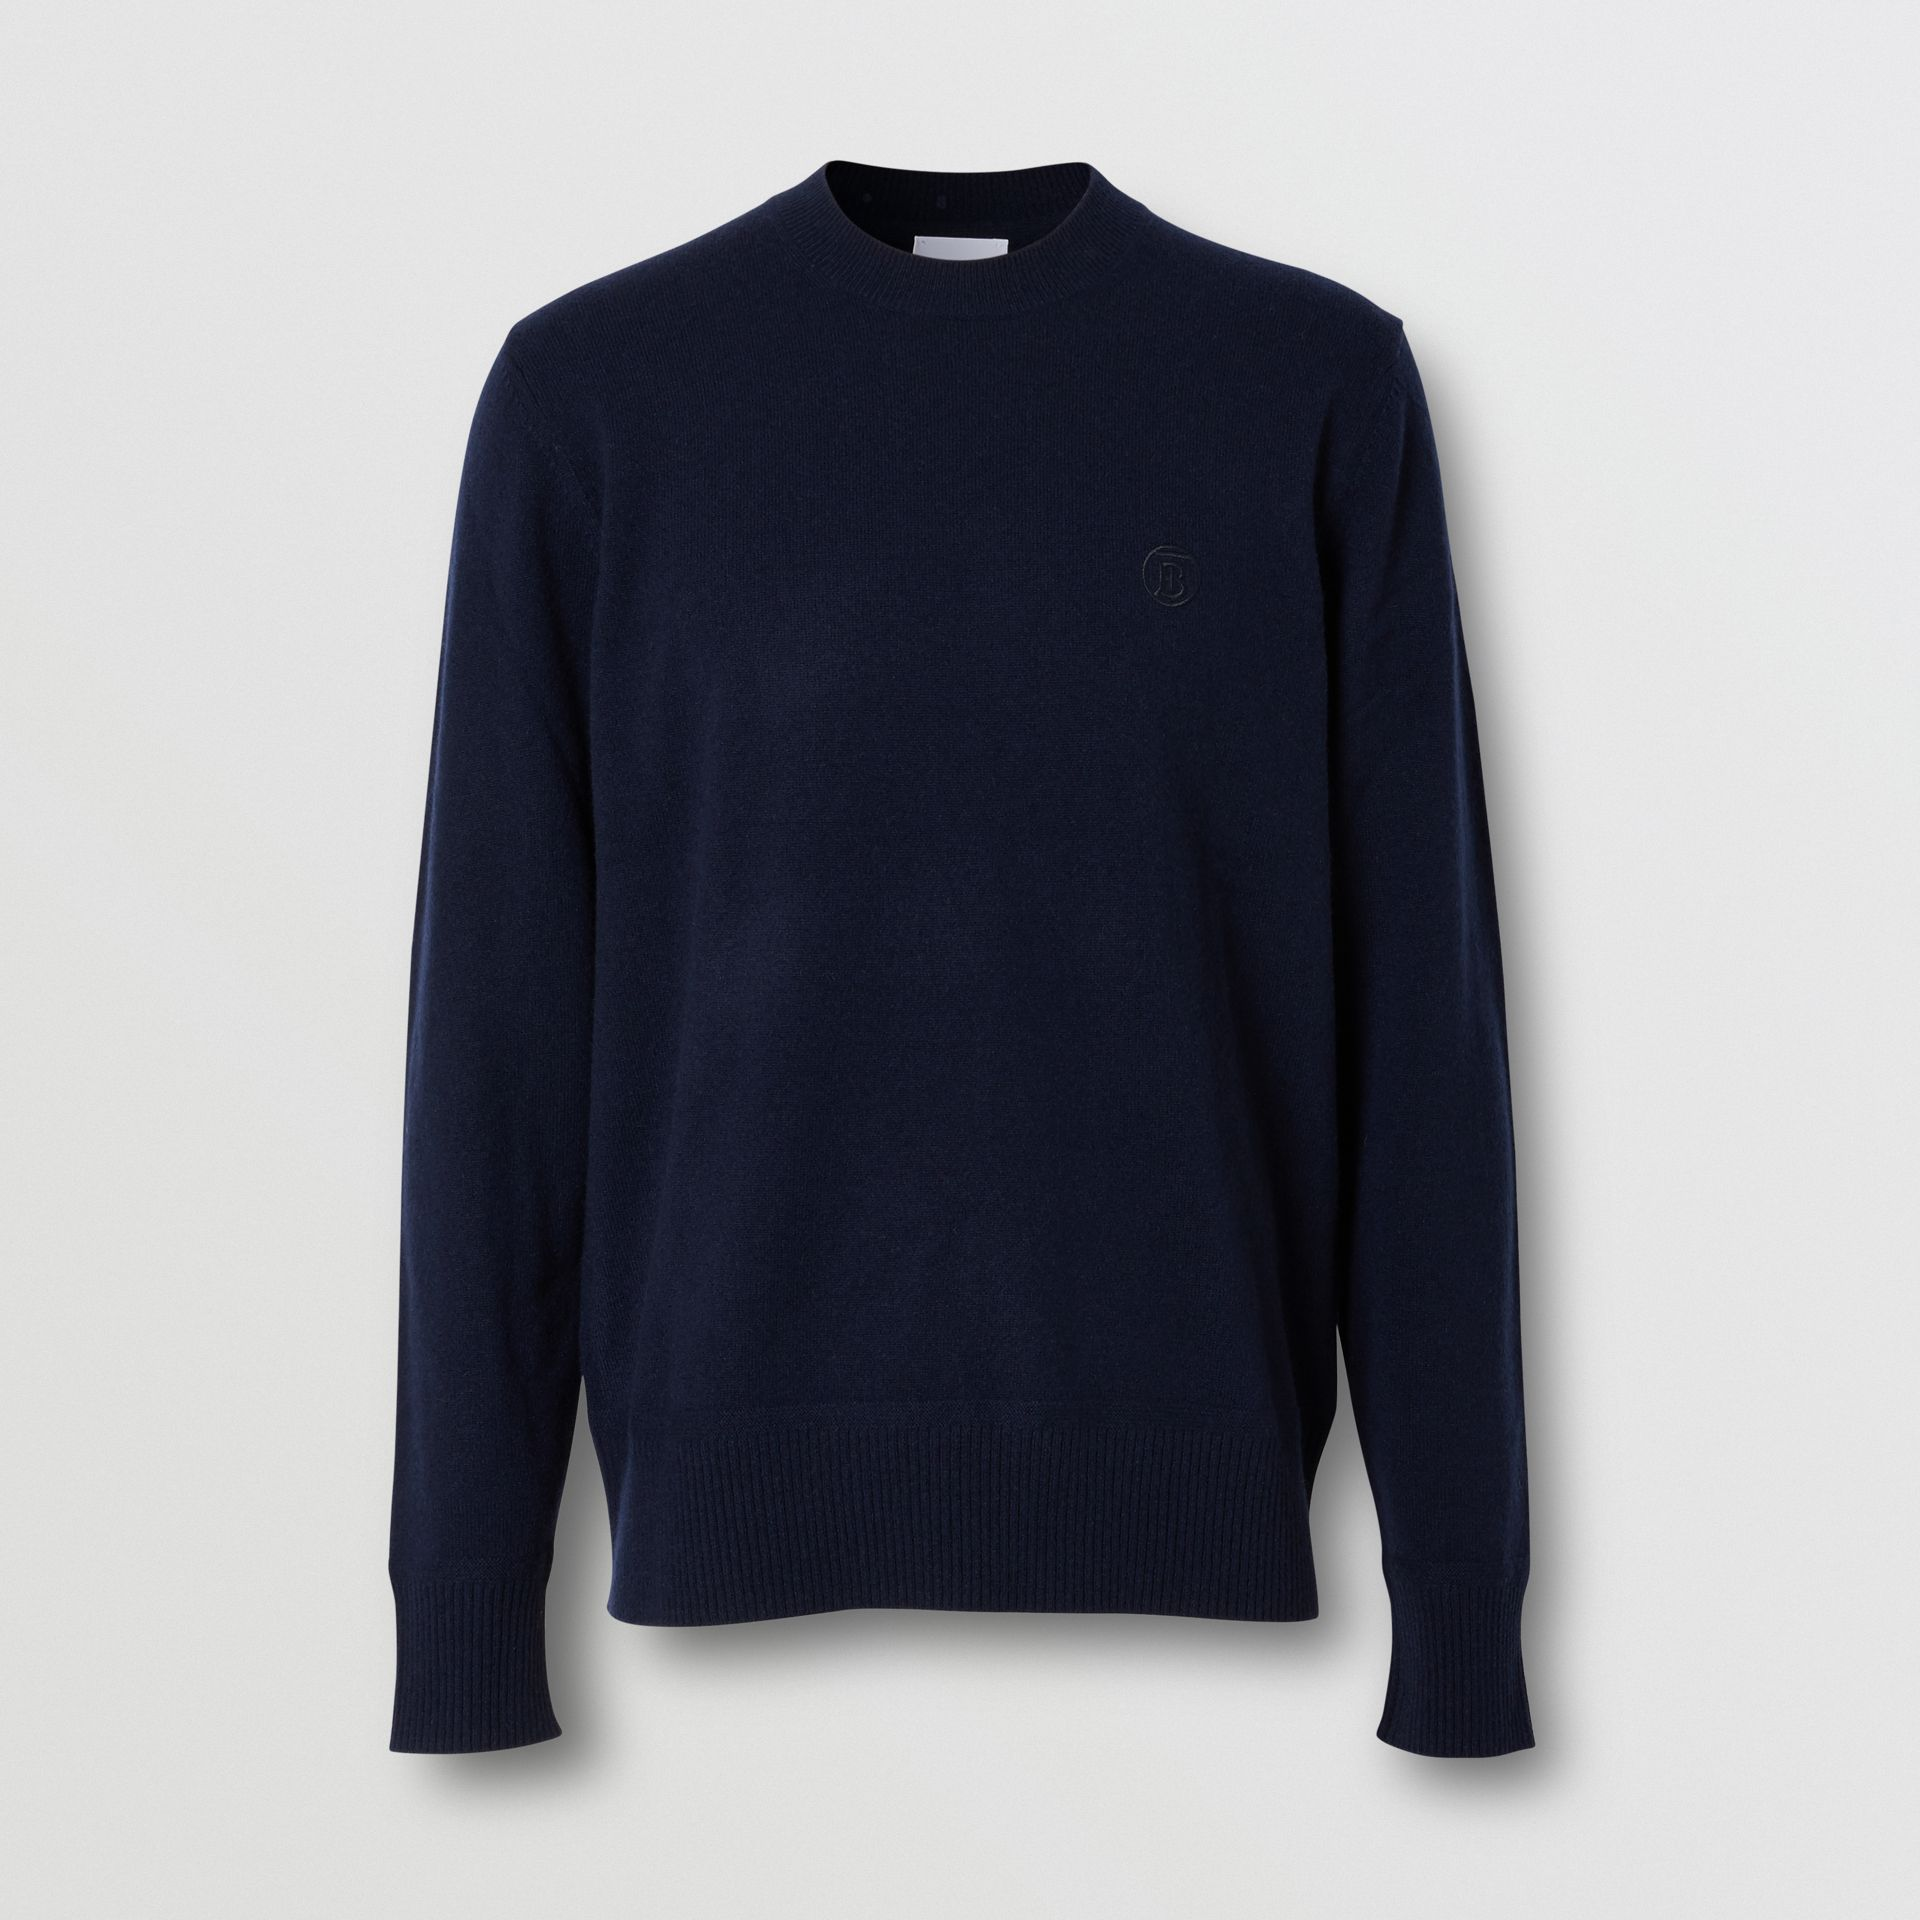 Monogram Motif Cashmere Sweater in Navy - Men | Burberry - gallery image 3